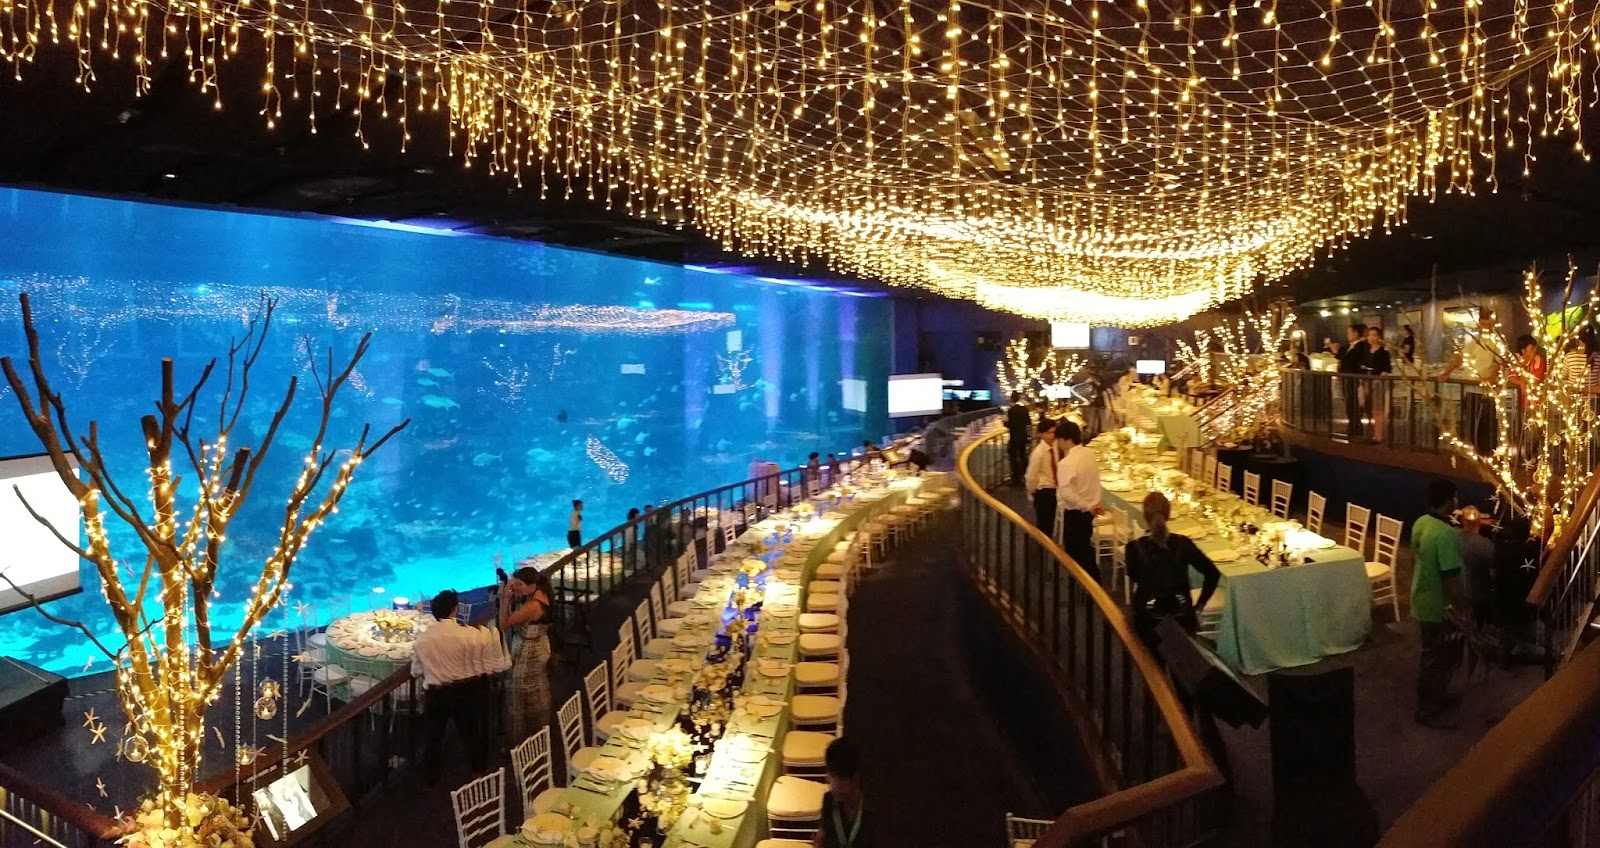 So Here Are Some Reasons Why You Should Totally Hold Your Wedding At The Rws Sea Aquarium If Hen To Be Pretty Rich